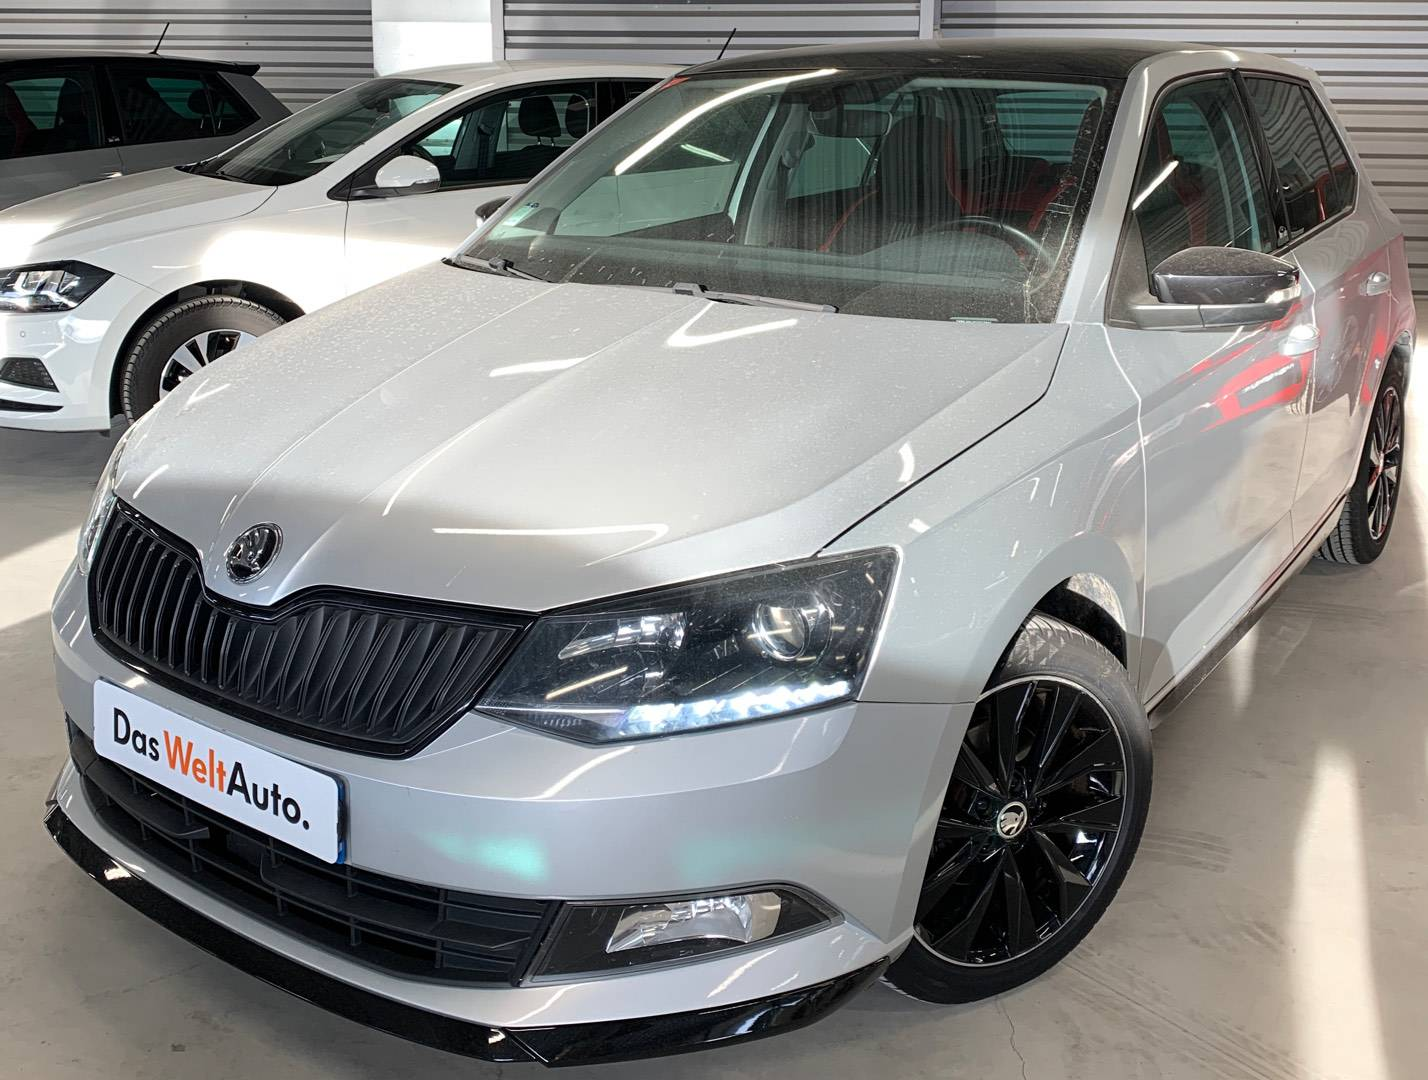 Fabia 1.4 TDI 90 CR FAP Greentec